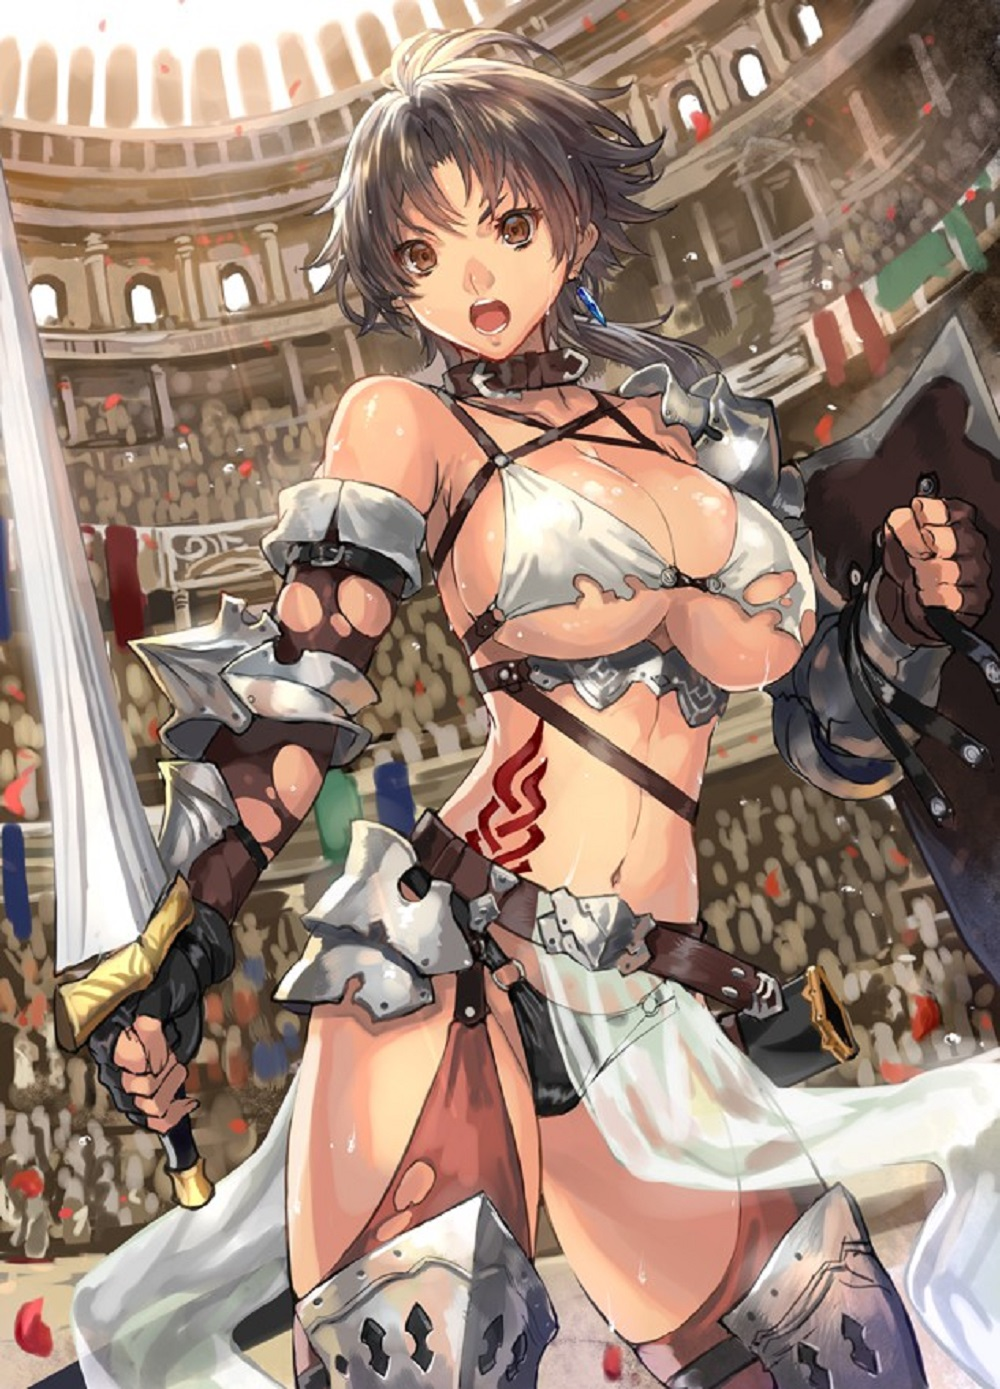 Anime elf knight hentai xxx hoes